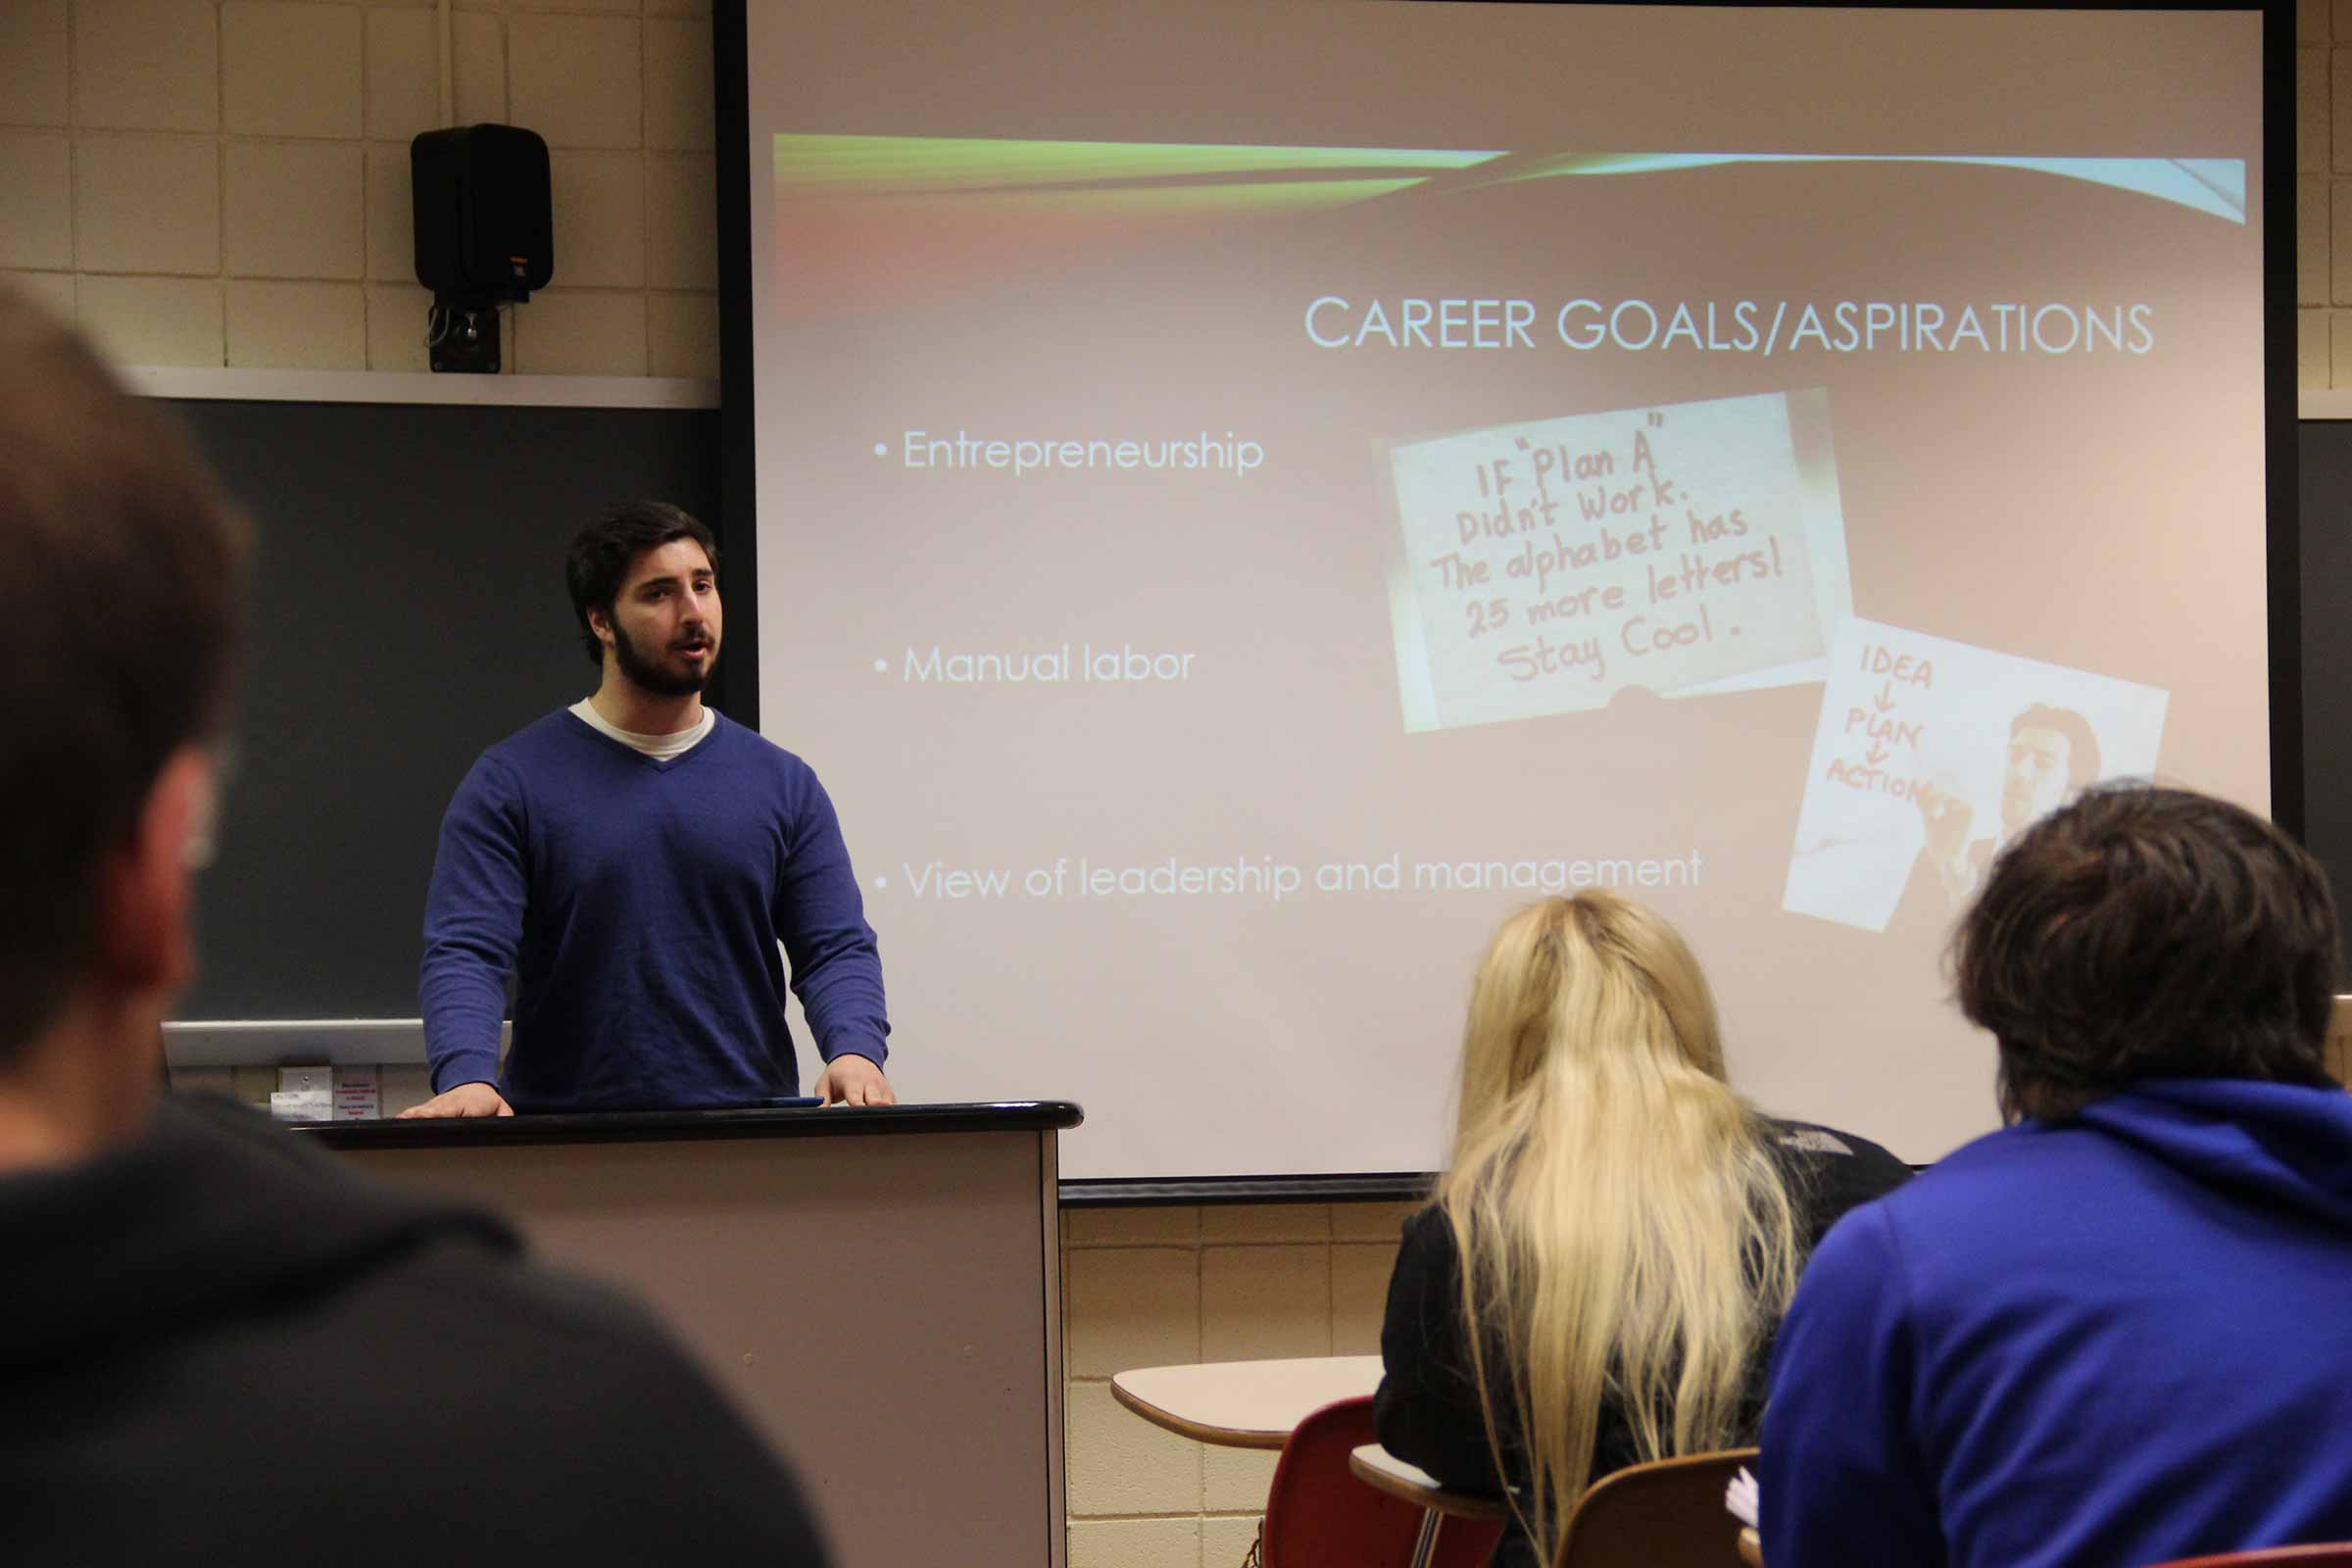 human resources college programs Explore human resources management studies and whether it's the right major for you learn how to find schools and universities with strong programs for this major.